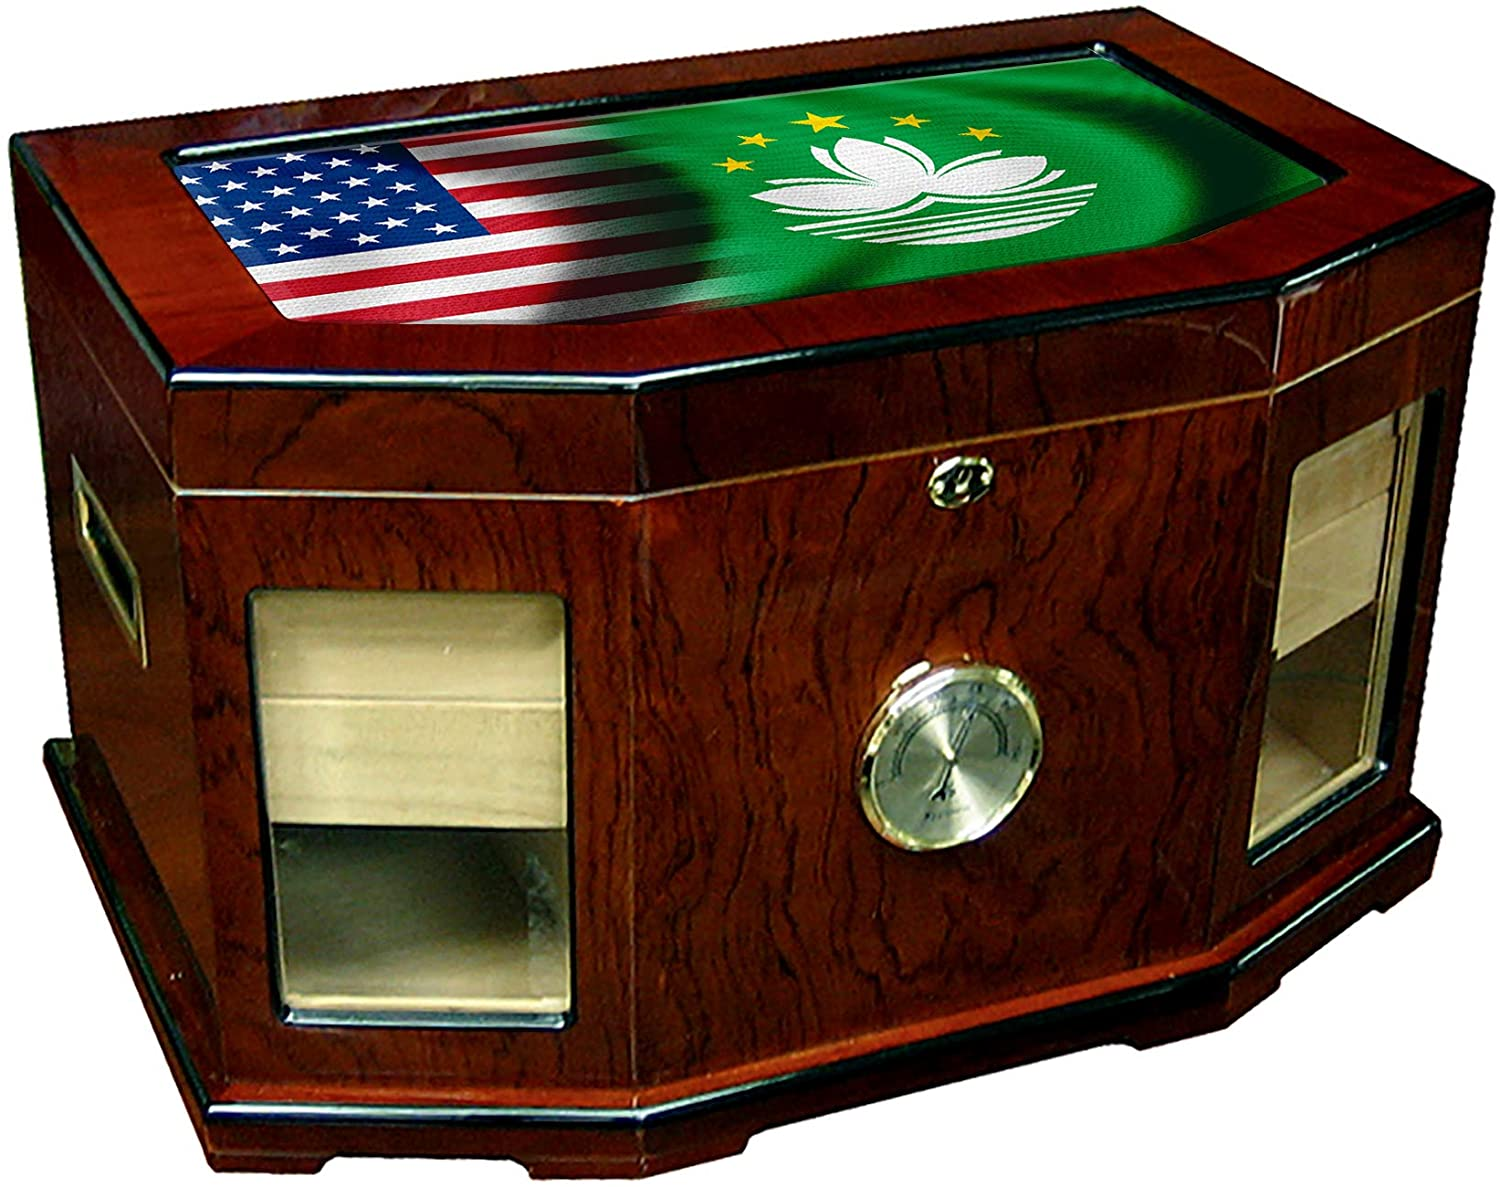 Large Premium Desktop Humidor - Glass Top - Flag of Macao (Macanese) - Waves with USA Flag - 300 Cigar Capacity - Cedar Lined with Two humidifiers & Large Front Mounted Hygrometer.